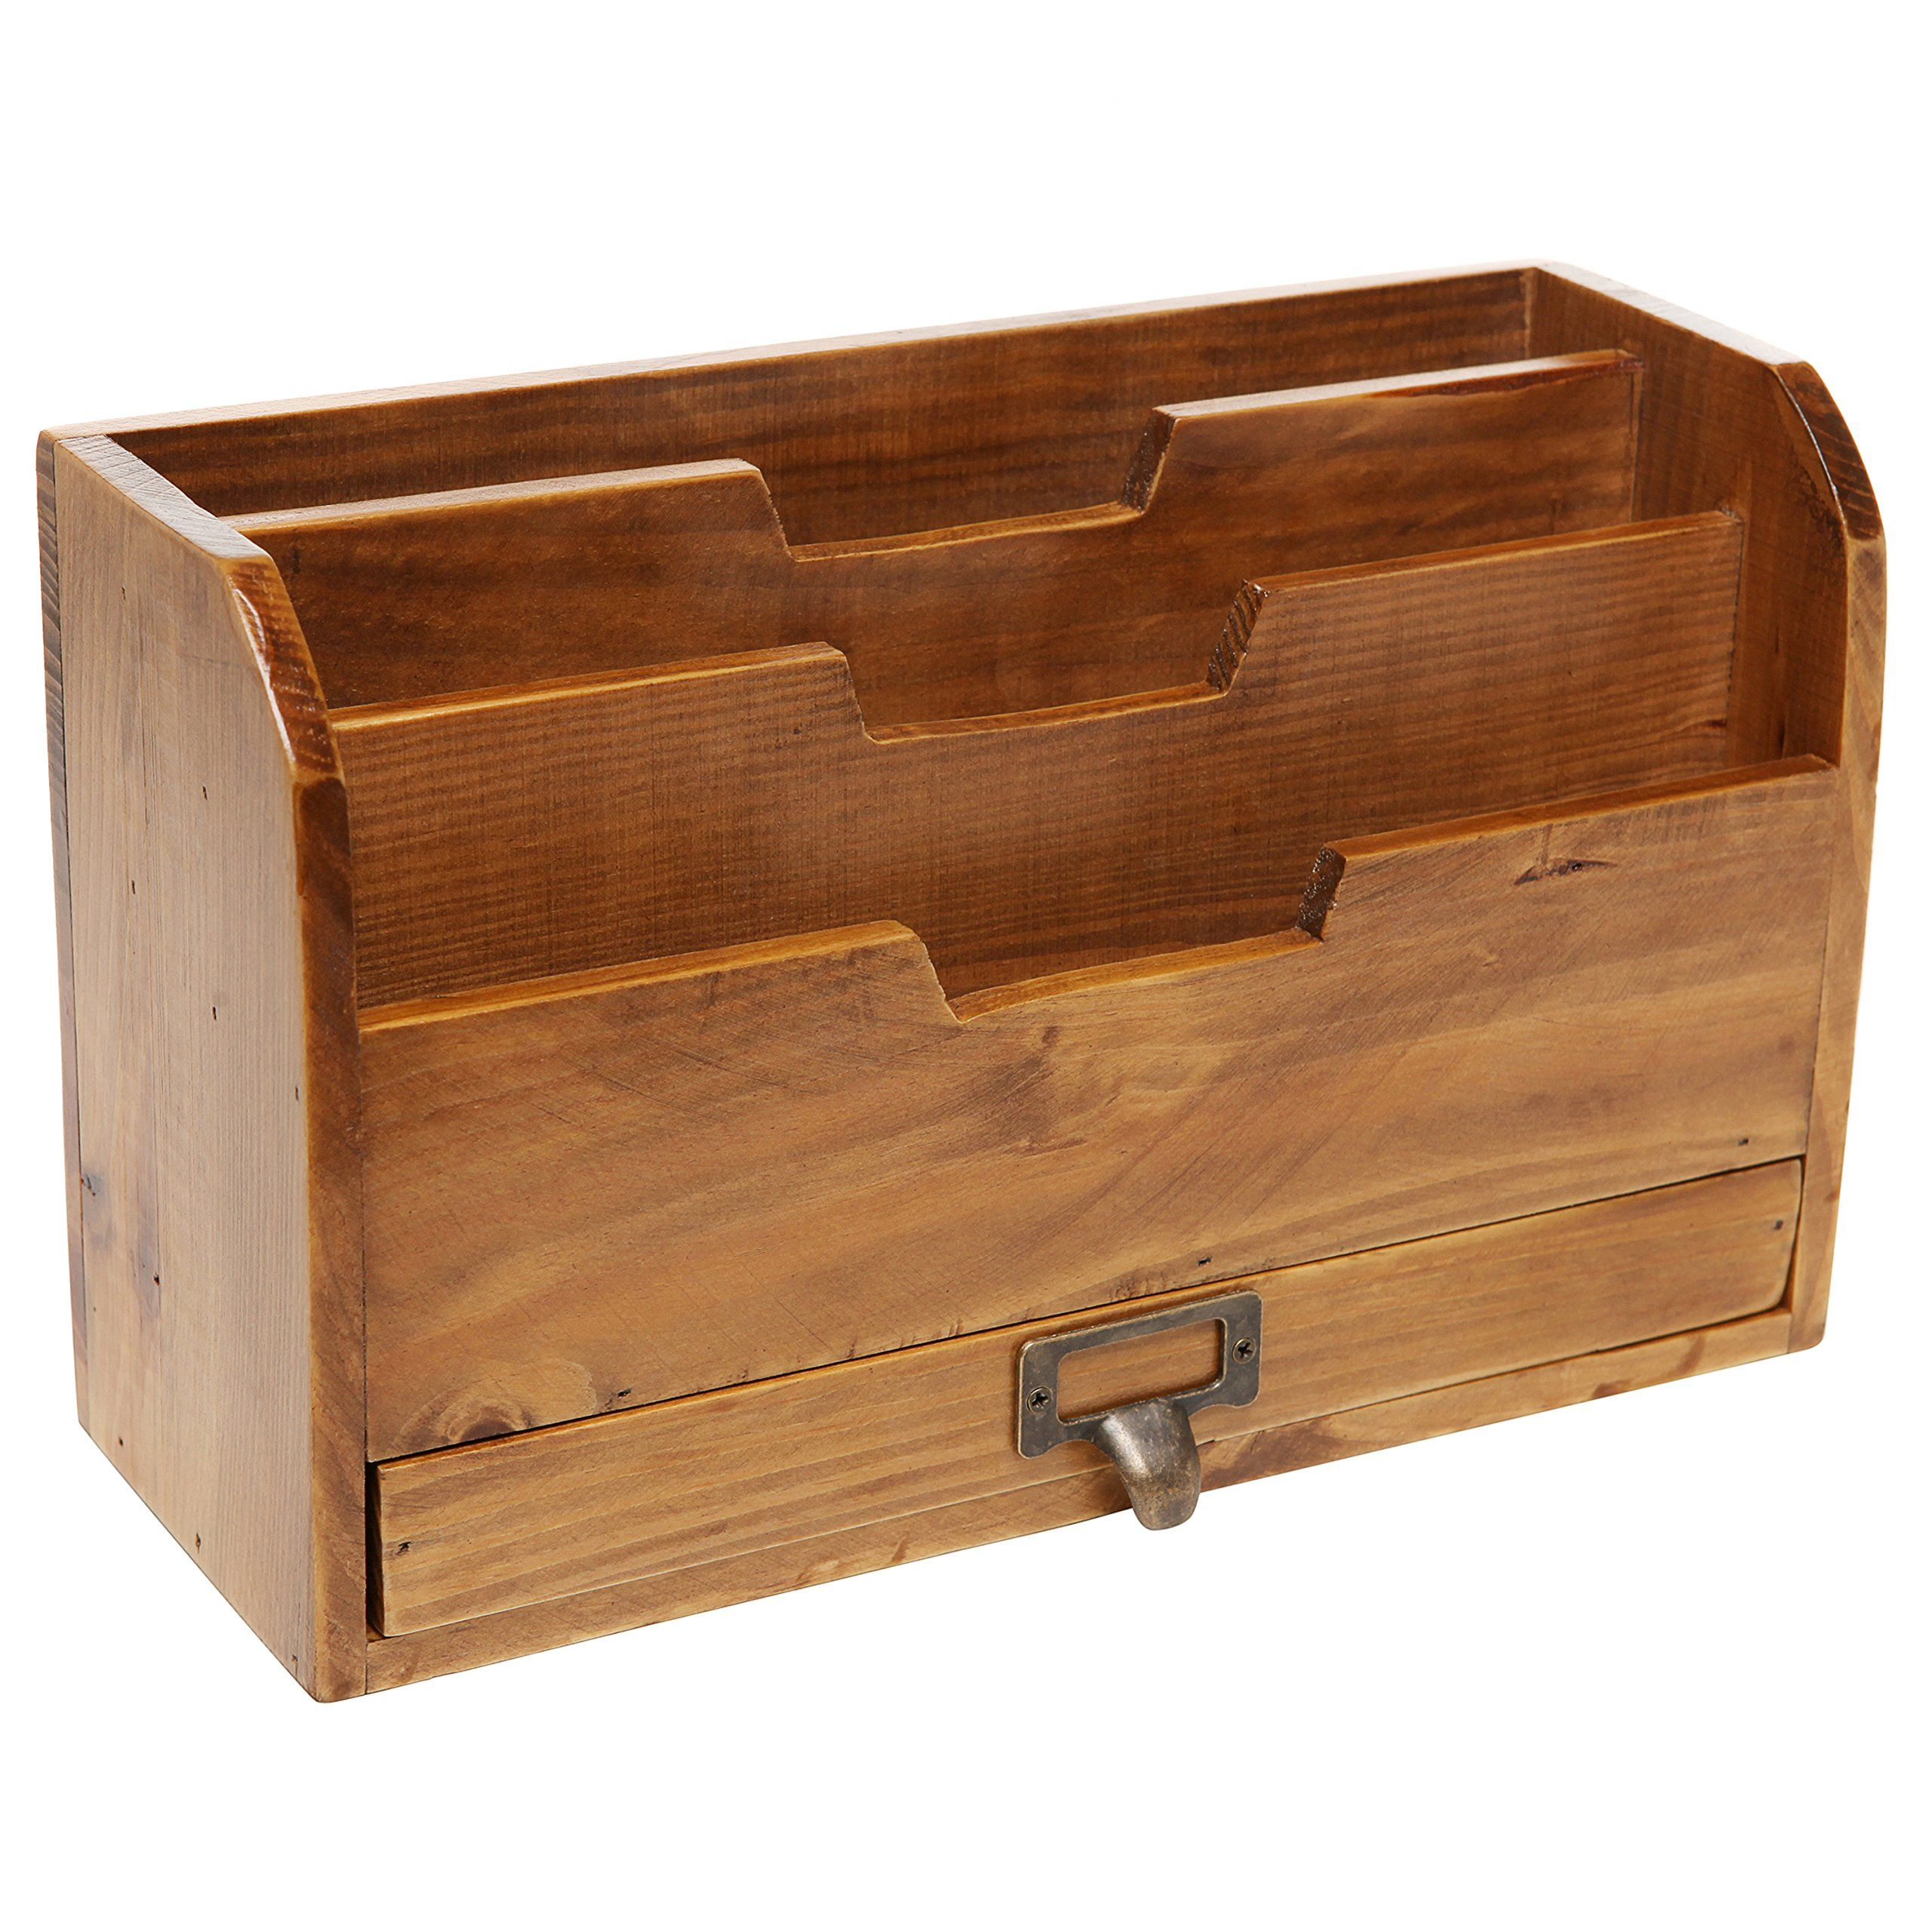 Admirable 3 Tier Country Rustic Vintage Wood Office Desk File Home Interior And Landscaping Mentranervesignezvosmurscom